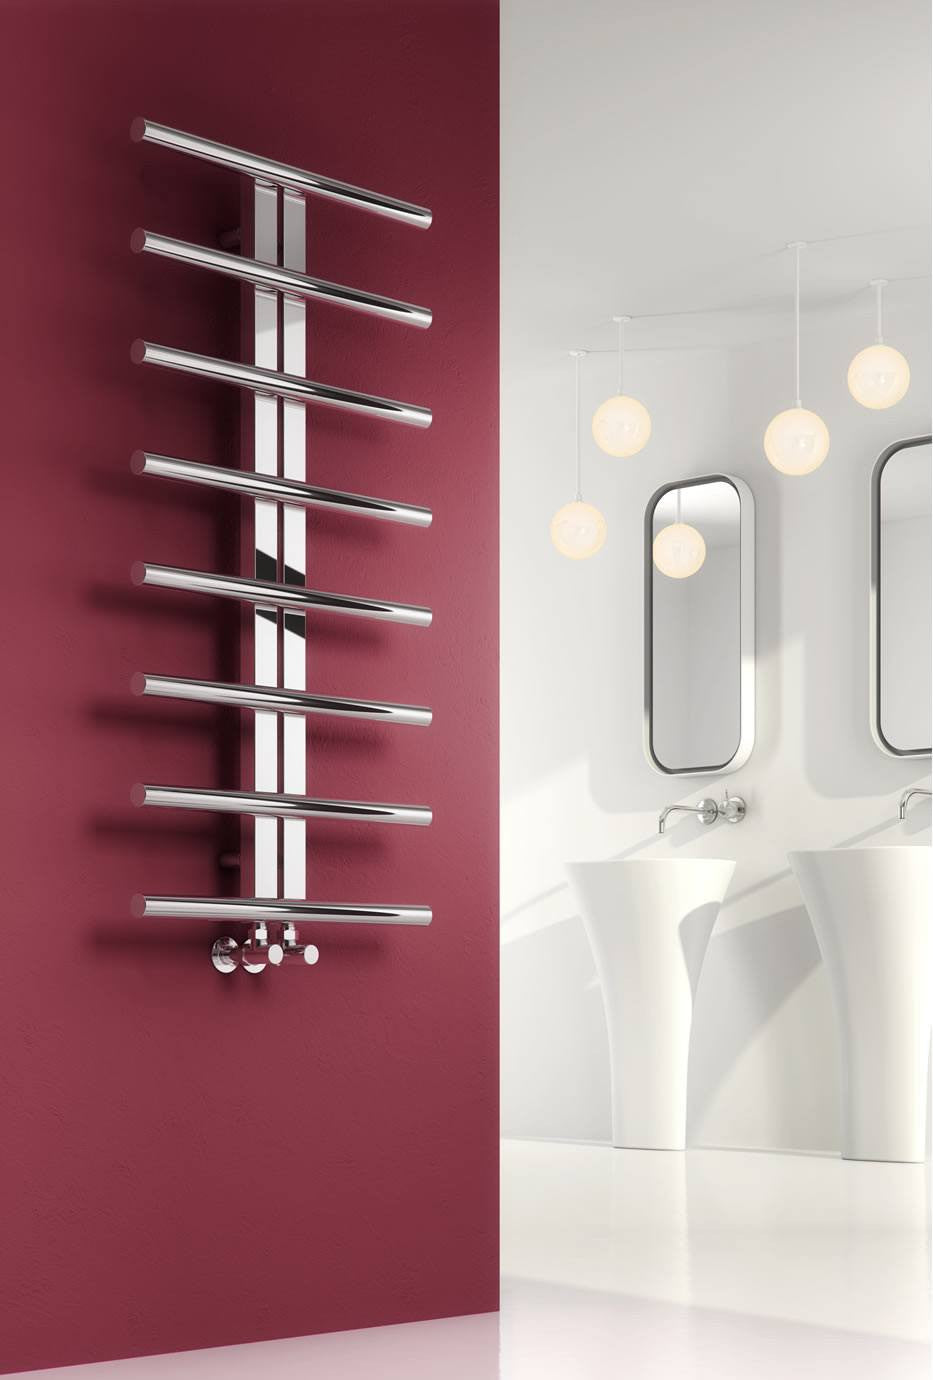 Reina Designer Pizzo Vertical Heated Towel Rail Stainless Steel Radiator